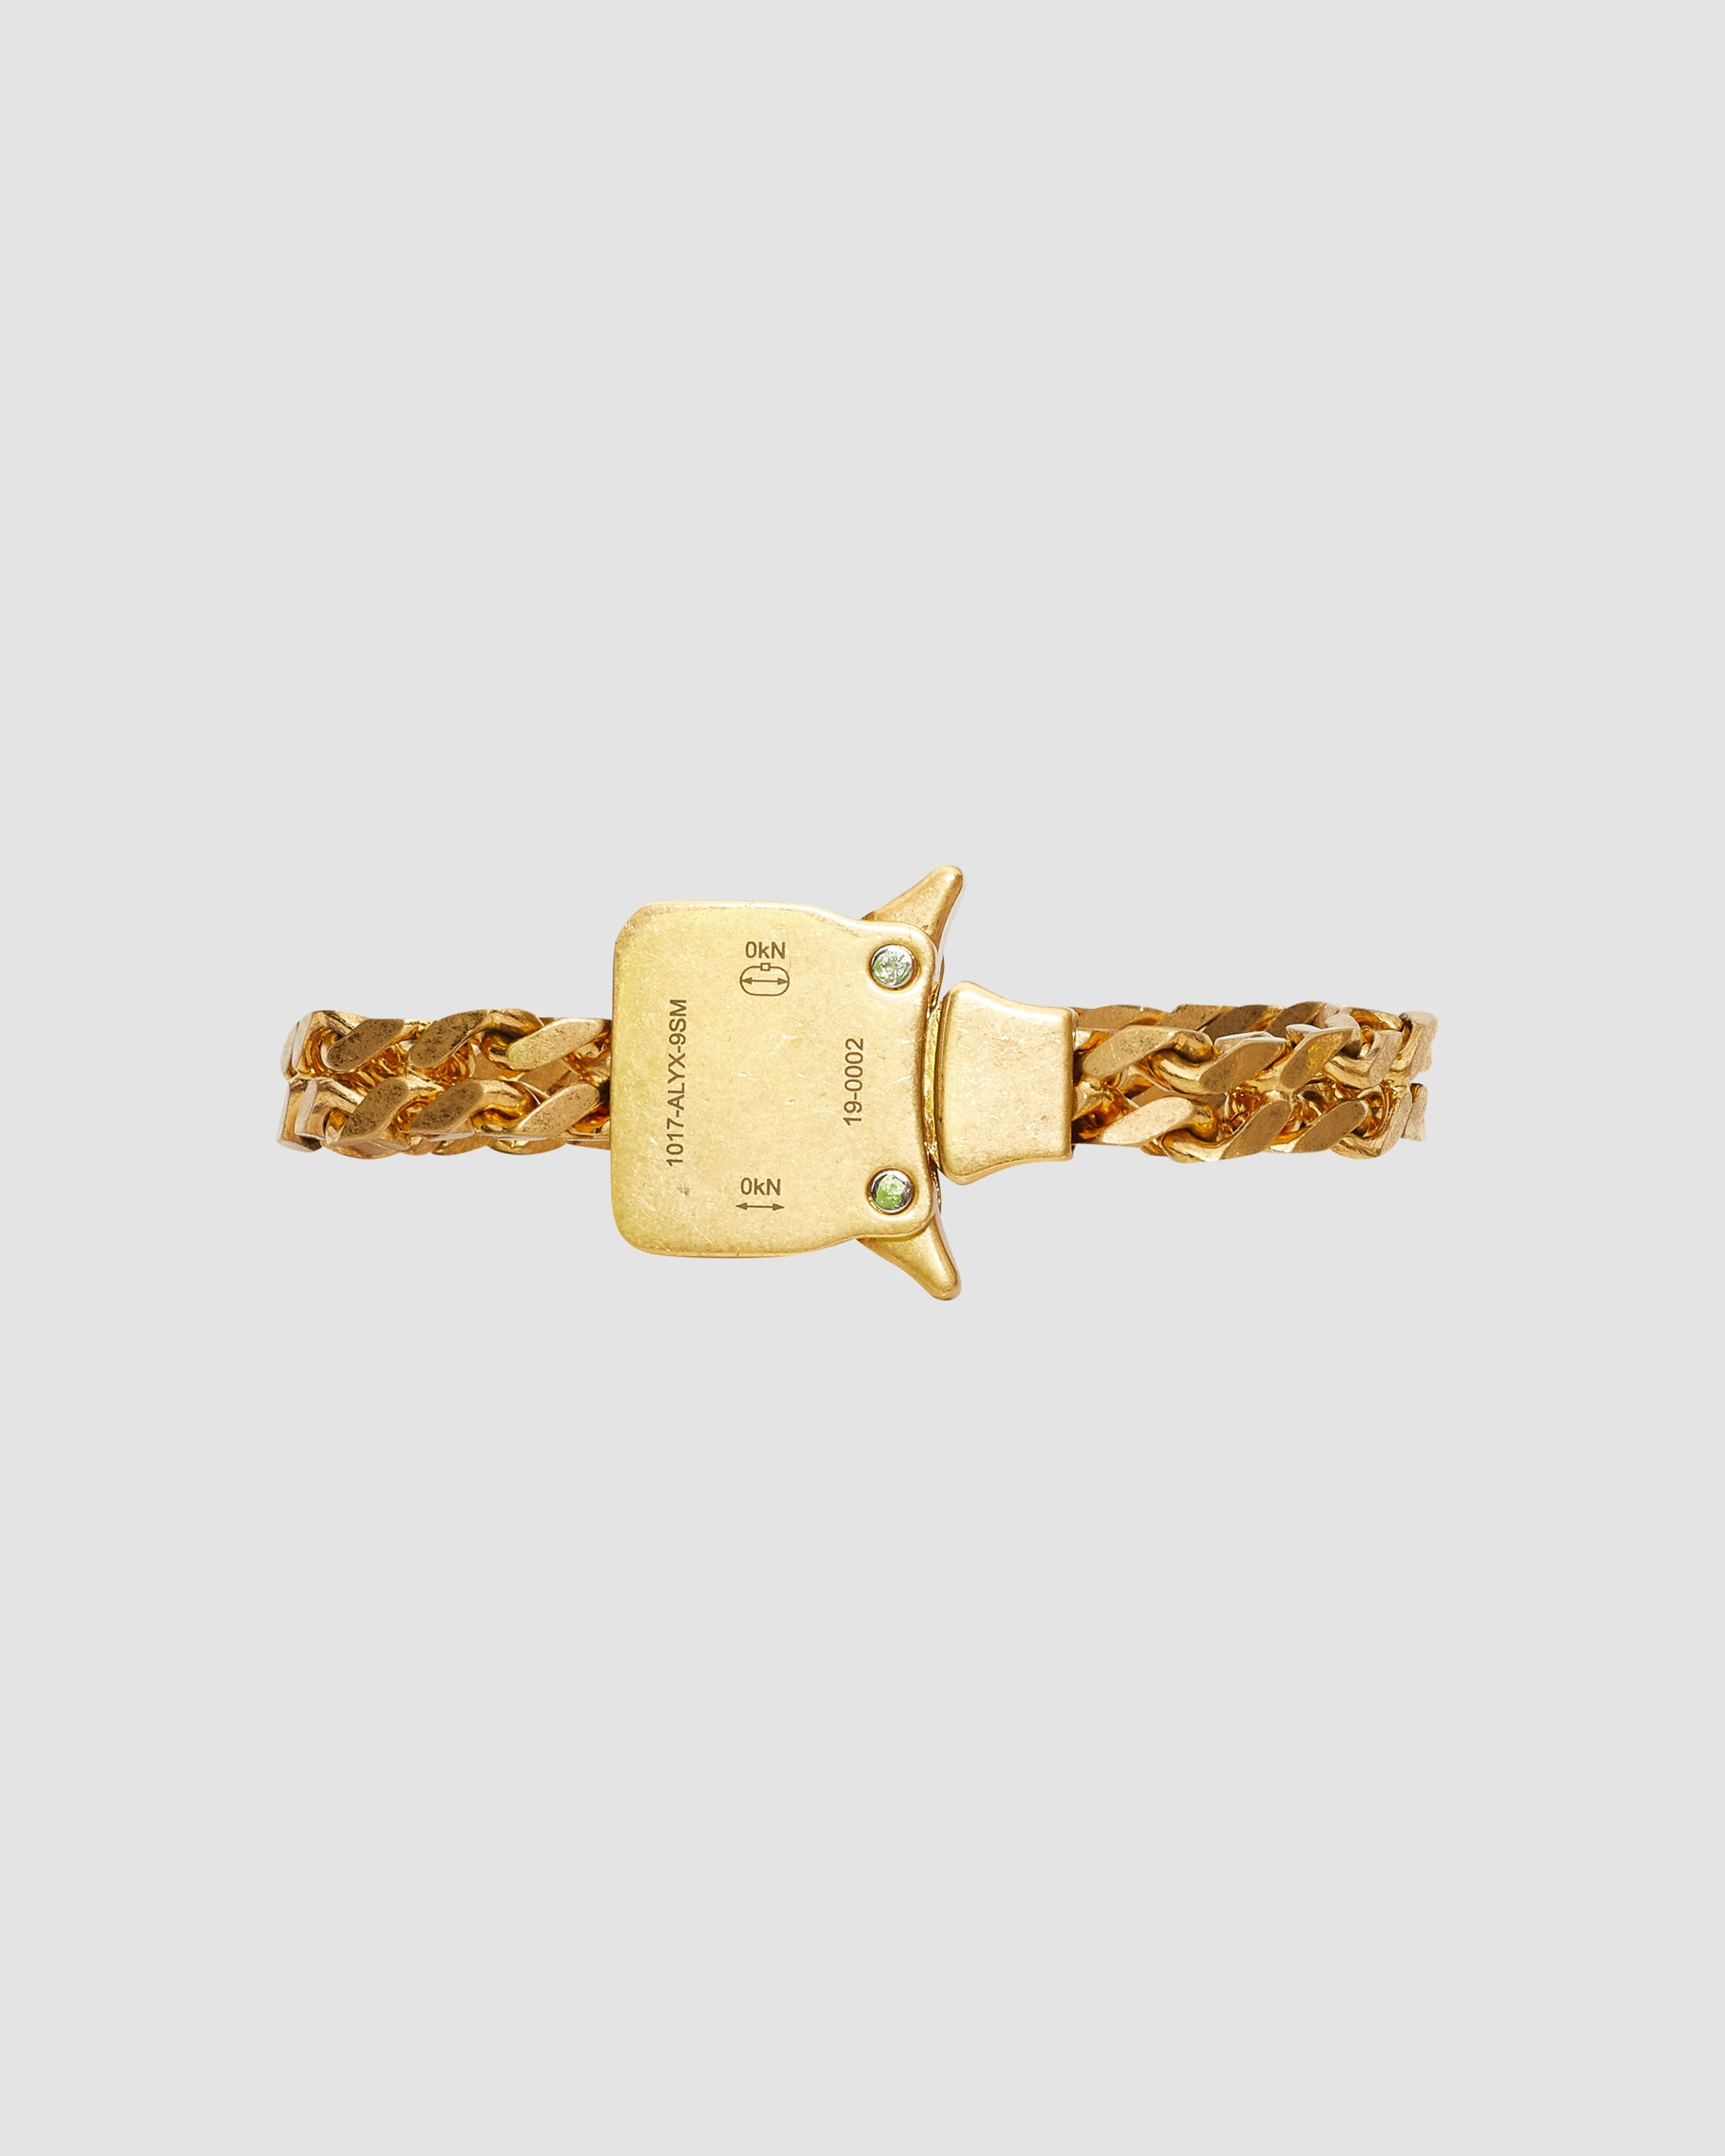 1017 ALYX 9SM | CUBIX MINI BRACELET | Jewellery | Accessories, GOLD, Google Shopping, Jewellery, jewelry, Man, S20, S20 Drop II, UNISEX, Woman